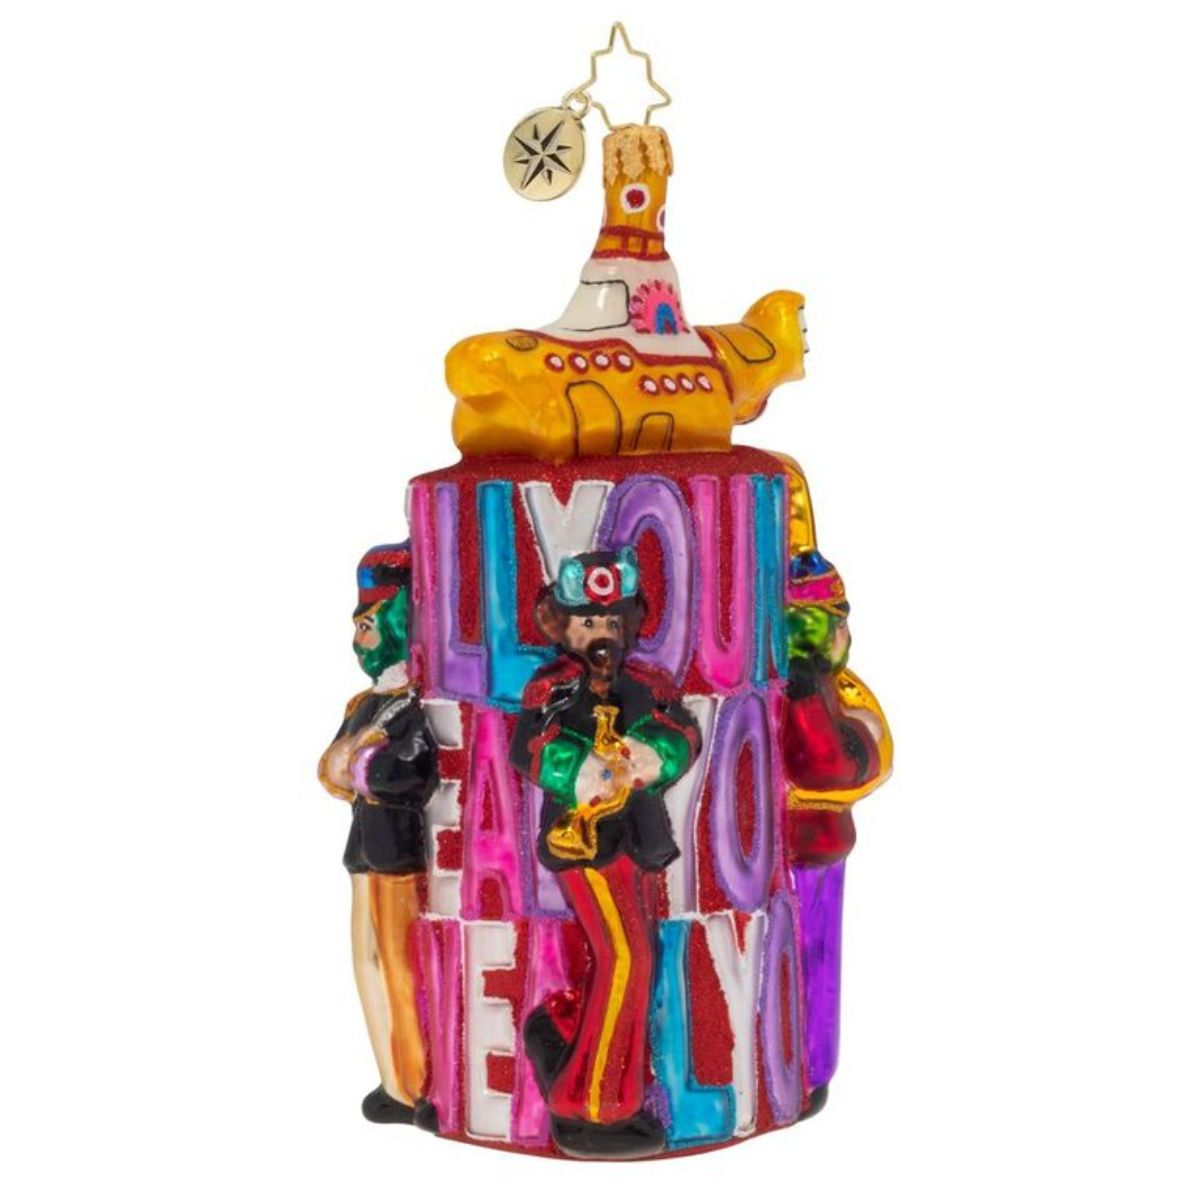 All You Need is Love Tower Ornament